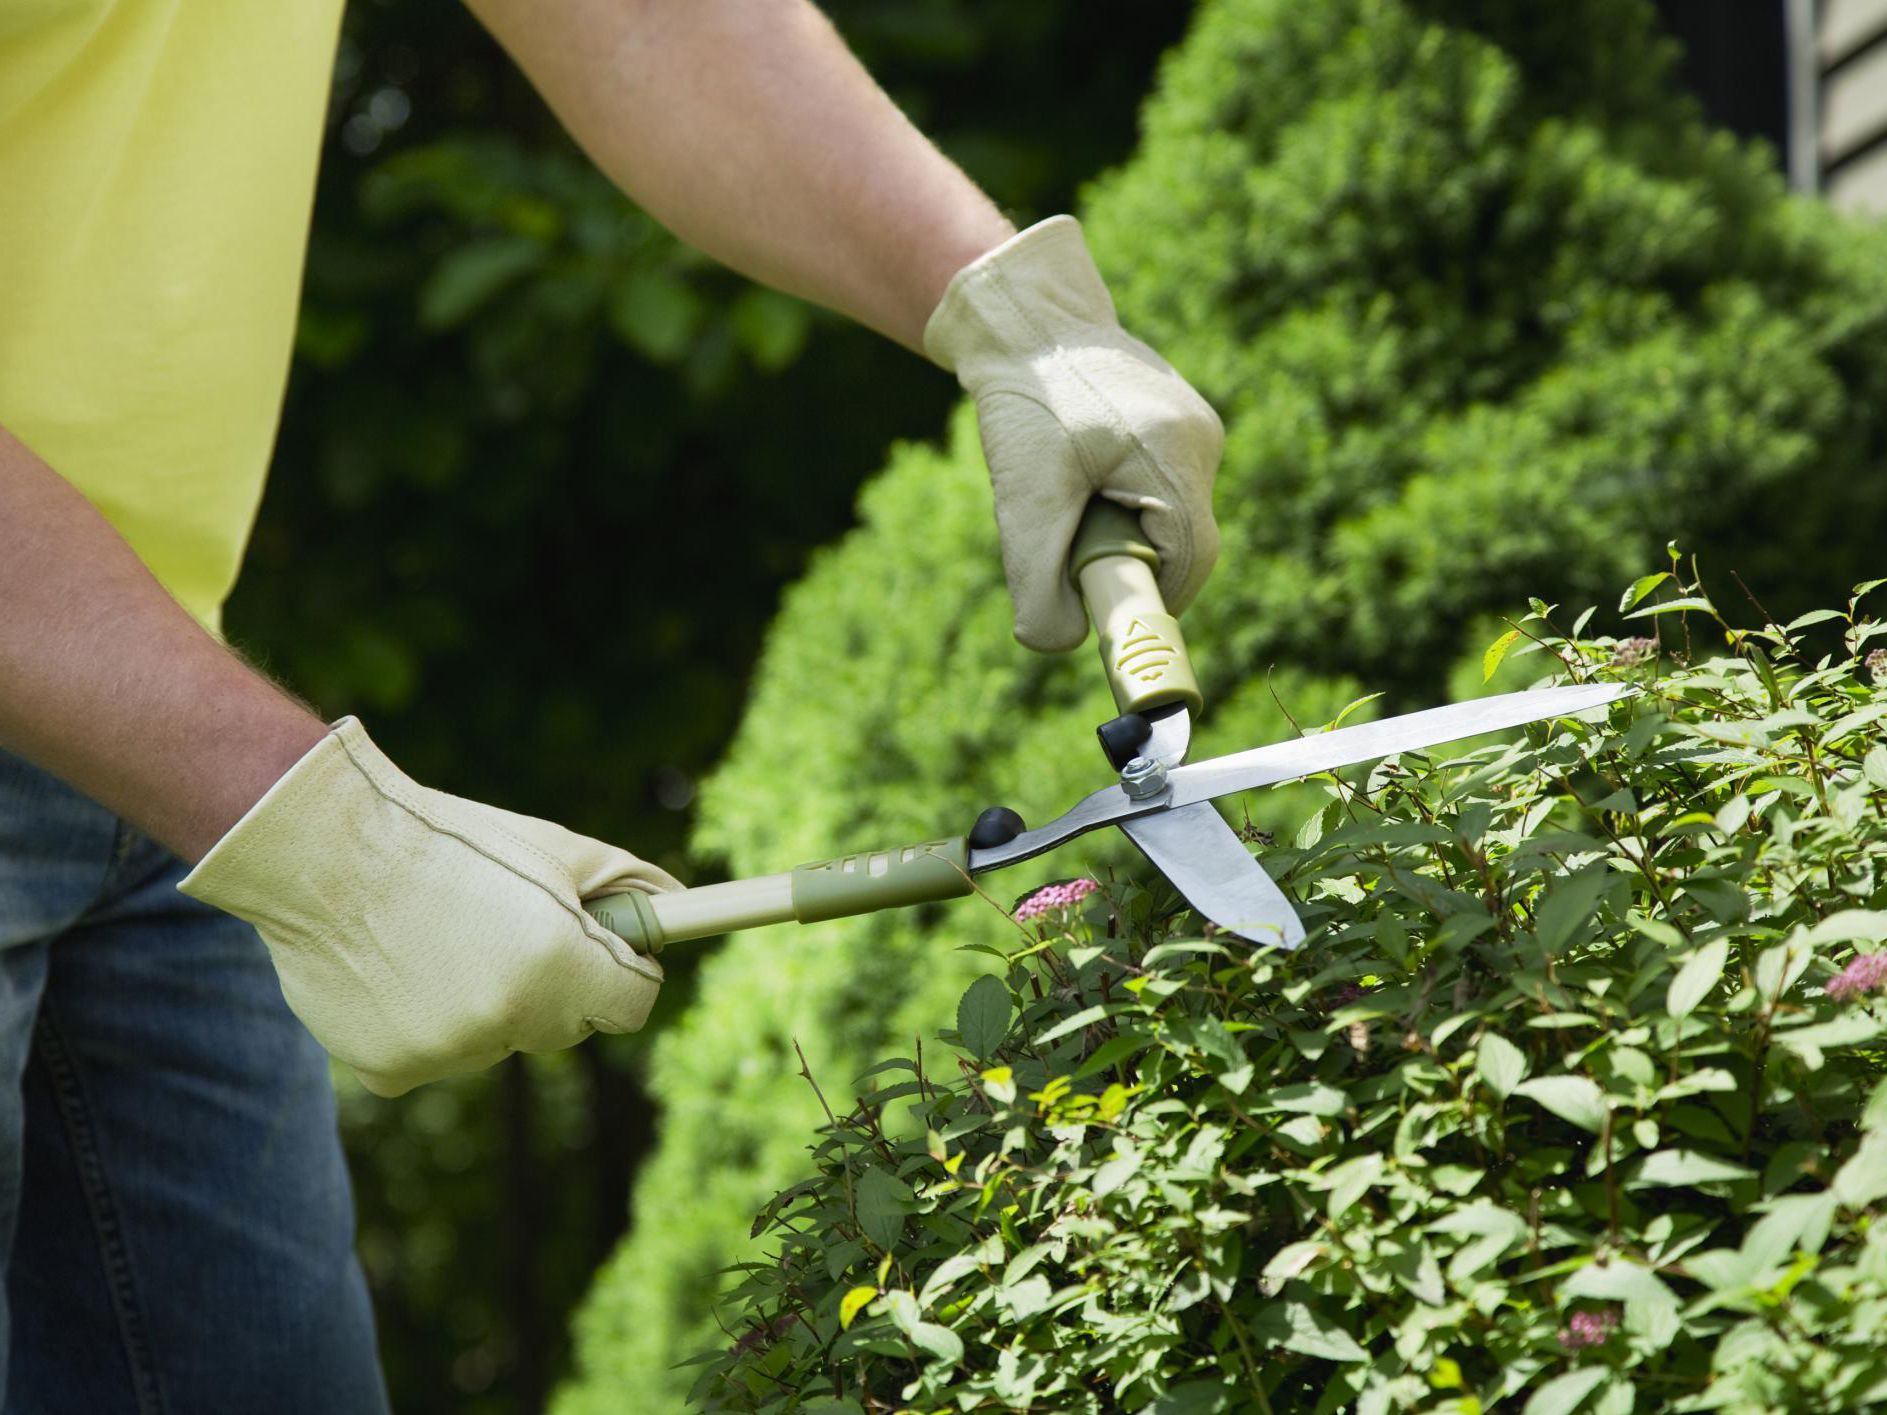 The 1/3 Rule for Pruning Shrubs